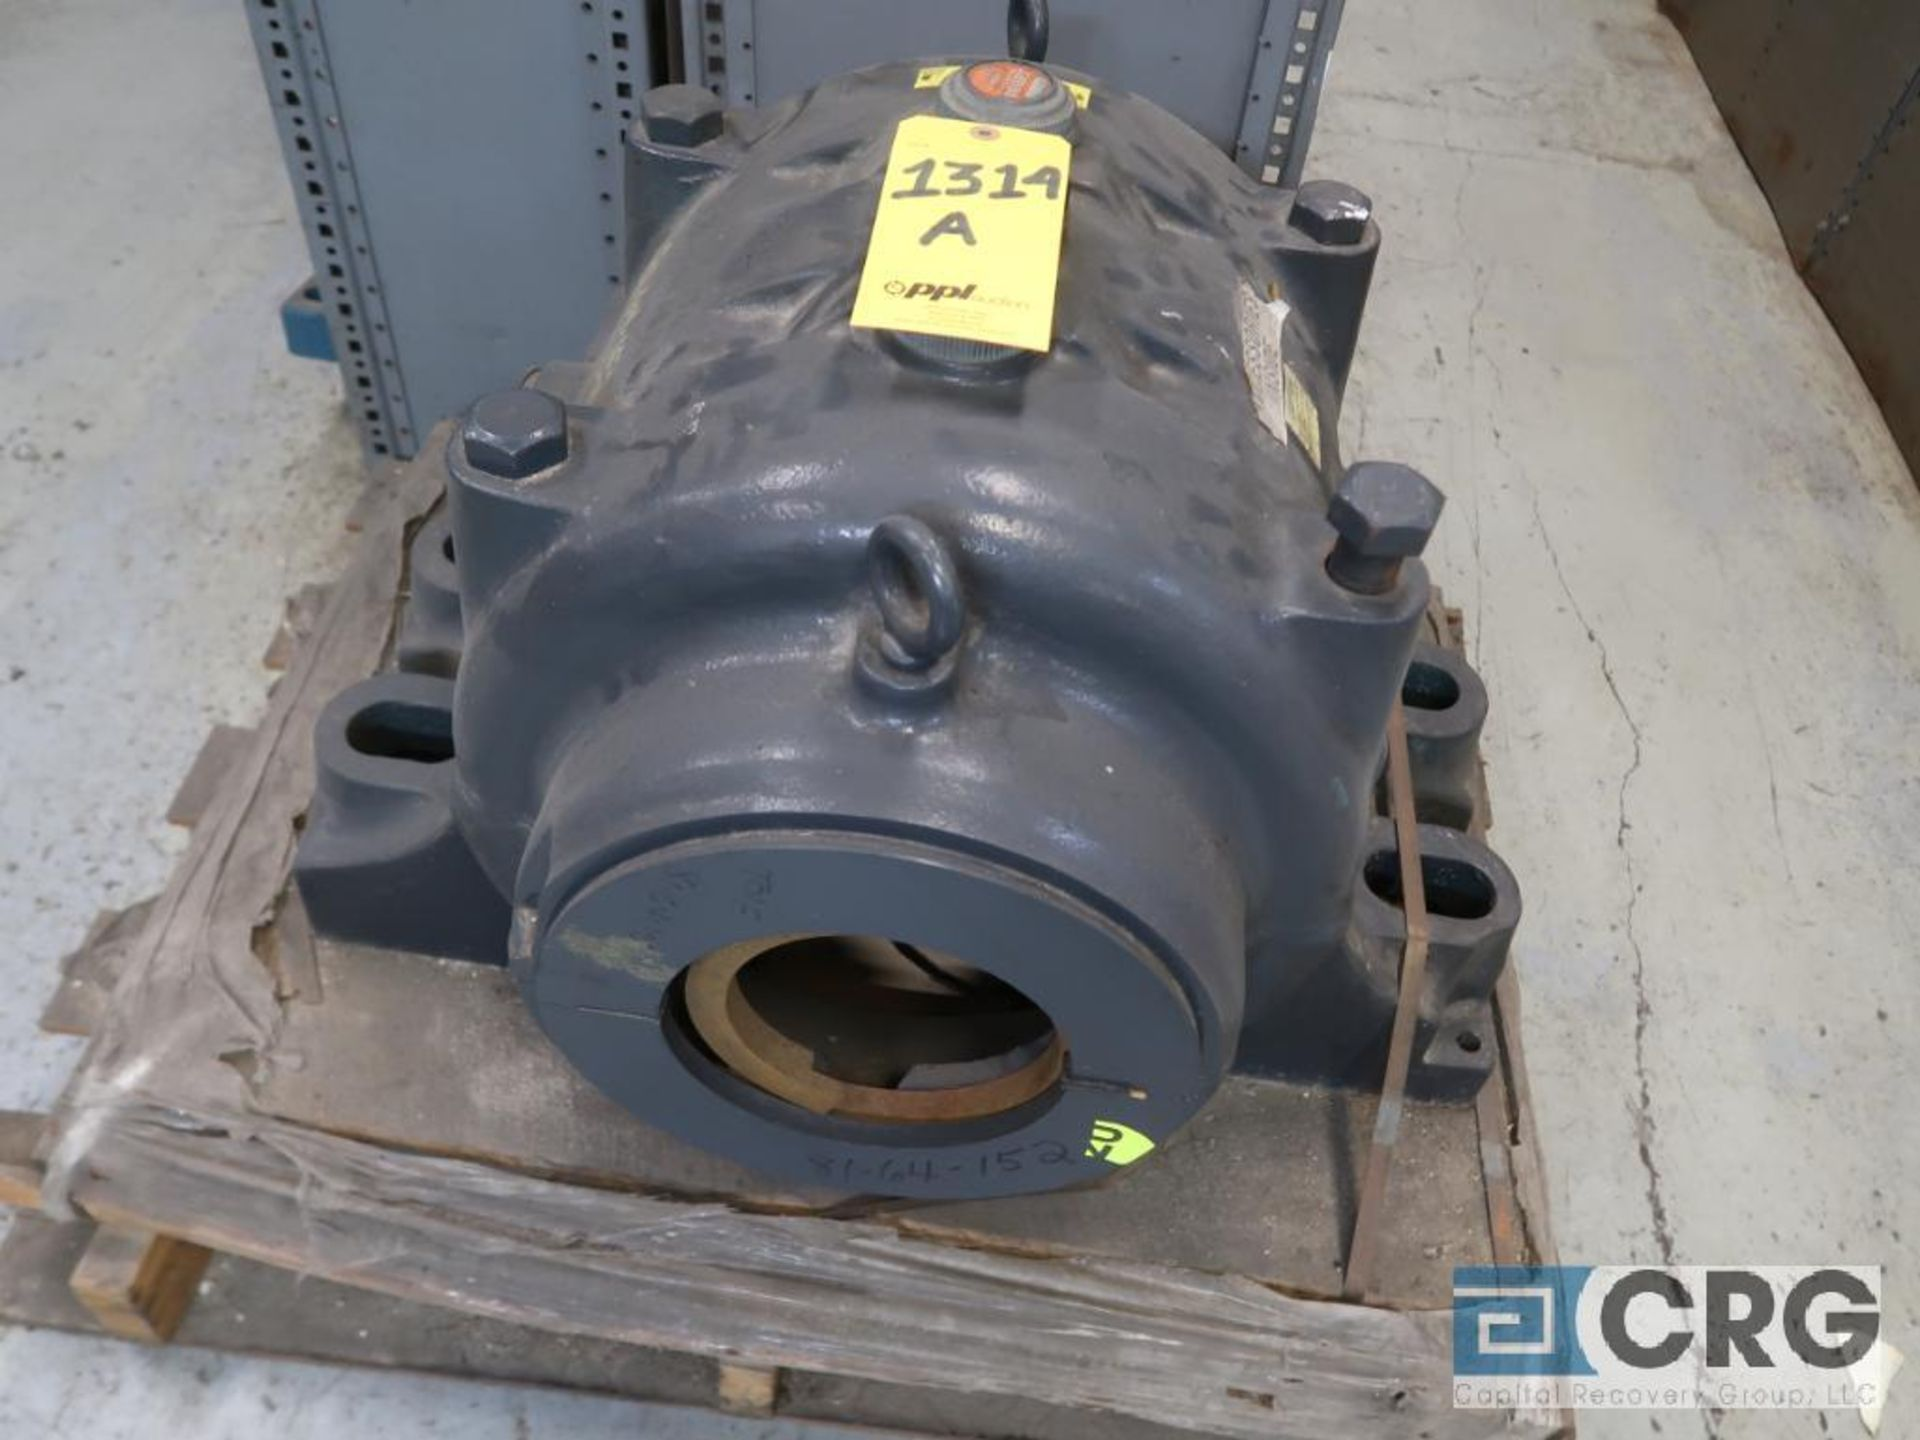 Lot of assorted large bearings and pillow blocks on (6) pallets (Basement Store) - Image 3 of 8